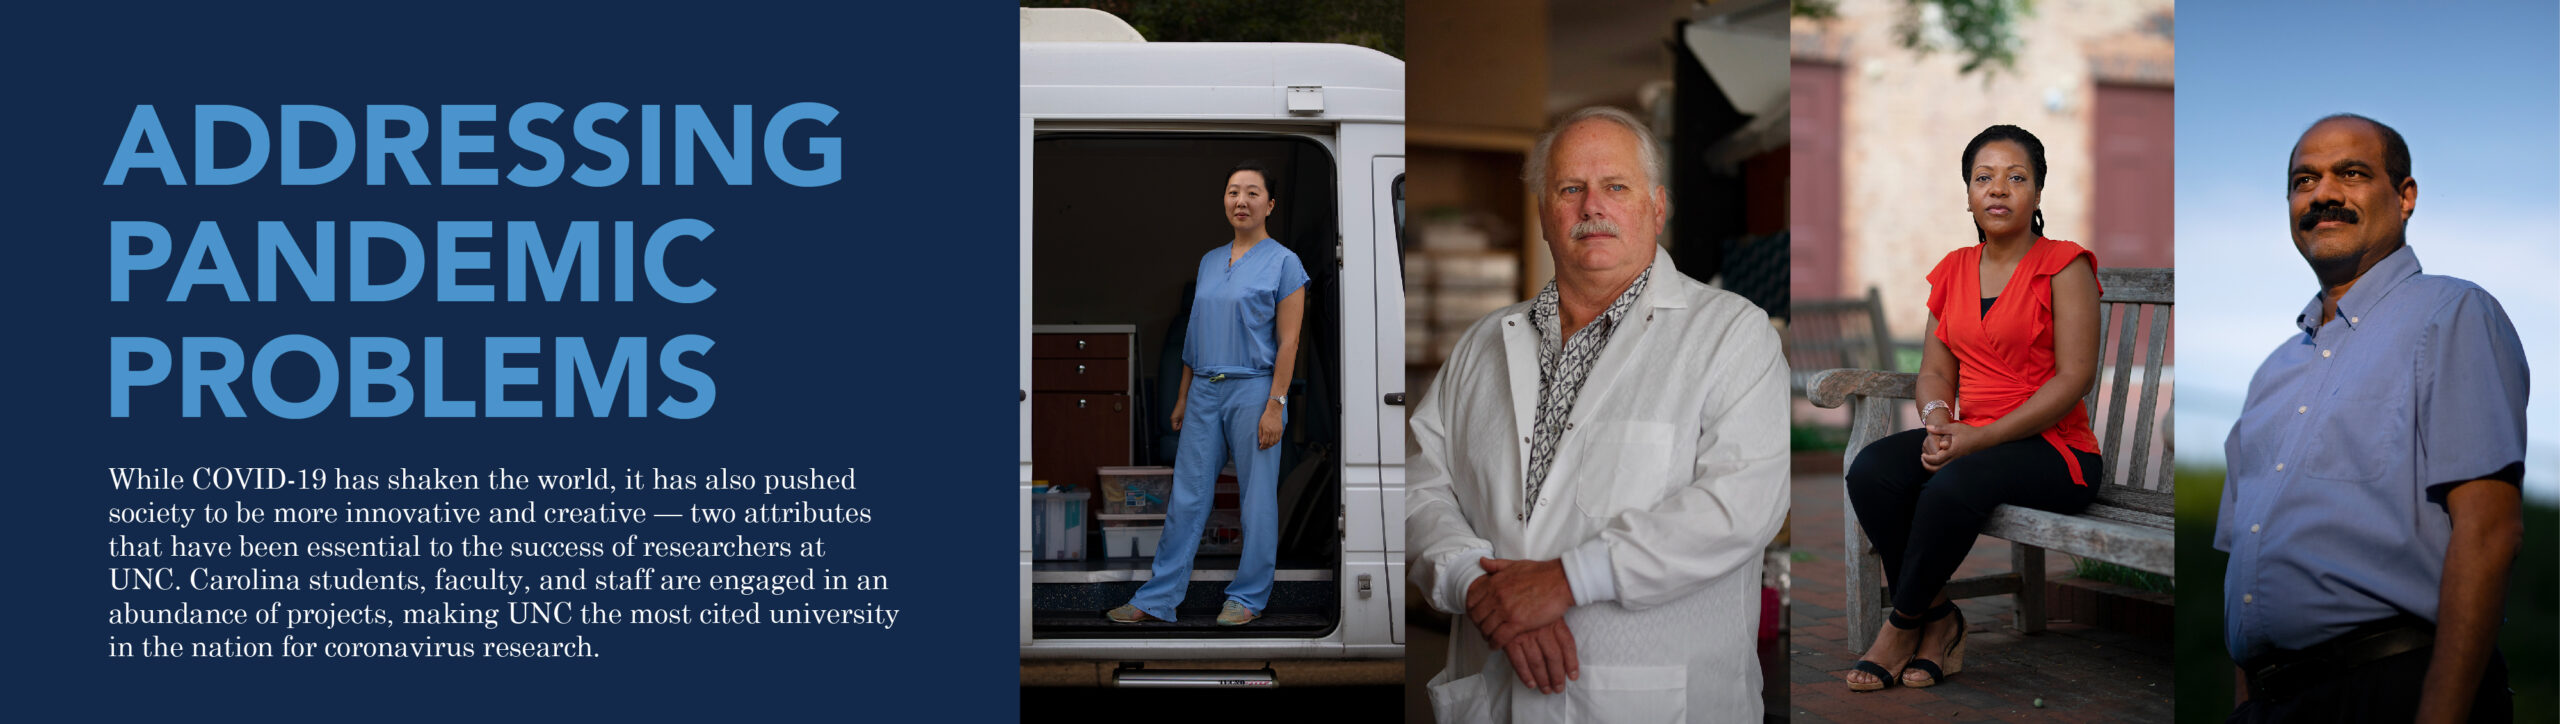 "Main feature banner for the story ""Addressing Pandemic Problems"" with portraits of researchers. The first photo is of a woman in blue scrubs, standing in a white van. The second image is of a man in his white coats in a lab with his hands folded in front of him. The third is of a woman in a red shirt, black pants, and heels sitting on a bench on UNC's campus. The fourth is looking up at a man wearing a blue button down shirt, with the sun lightly lighting up his face. The description for this story reads: ""While COVID-19 has shaken the world, it has also pushed society to be more innovative and creative — two attributes that have been essential to the success of researchers at UNC. Carolina students, faculty, and staff are engaged in an abundance of projects, making UNC the most cited university in the nation for coronavirus research."" Click here to read this story."